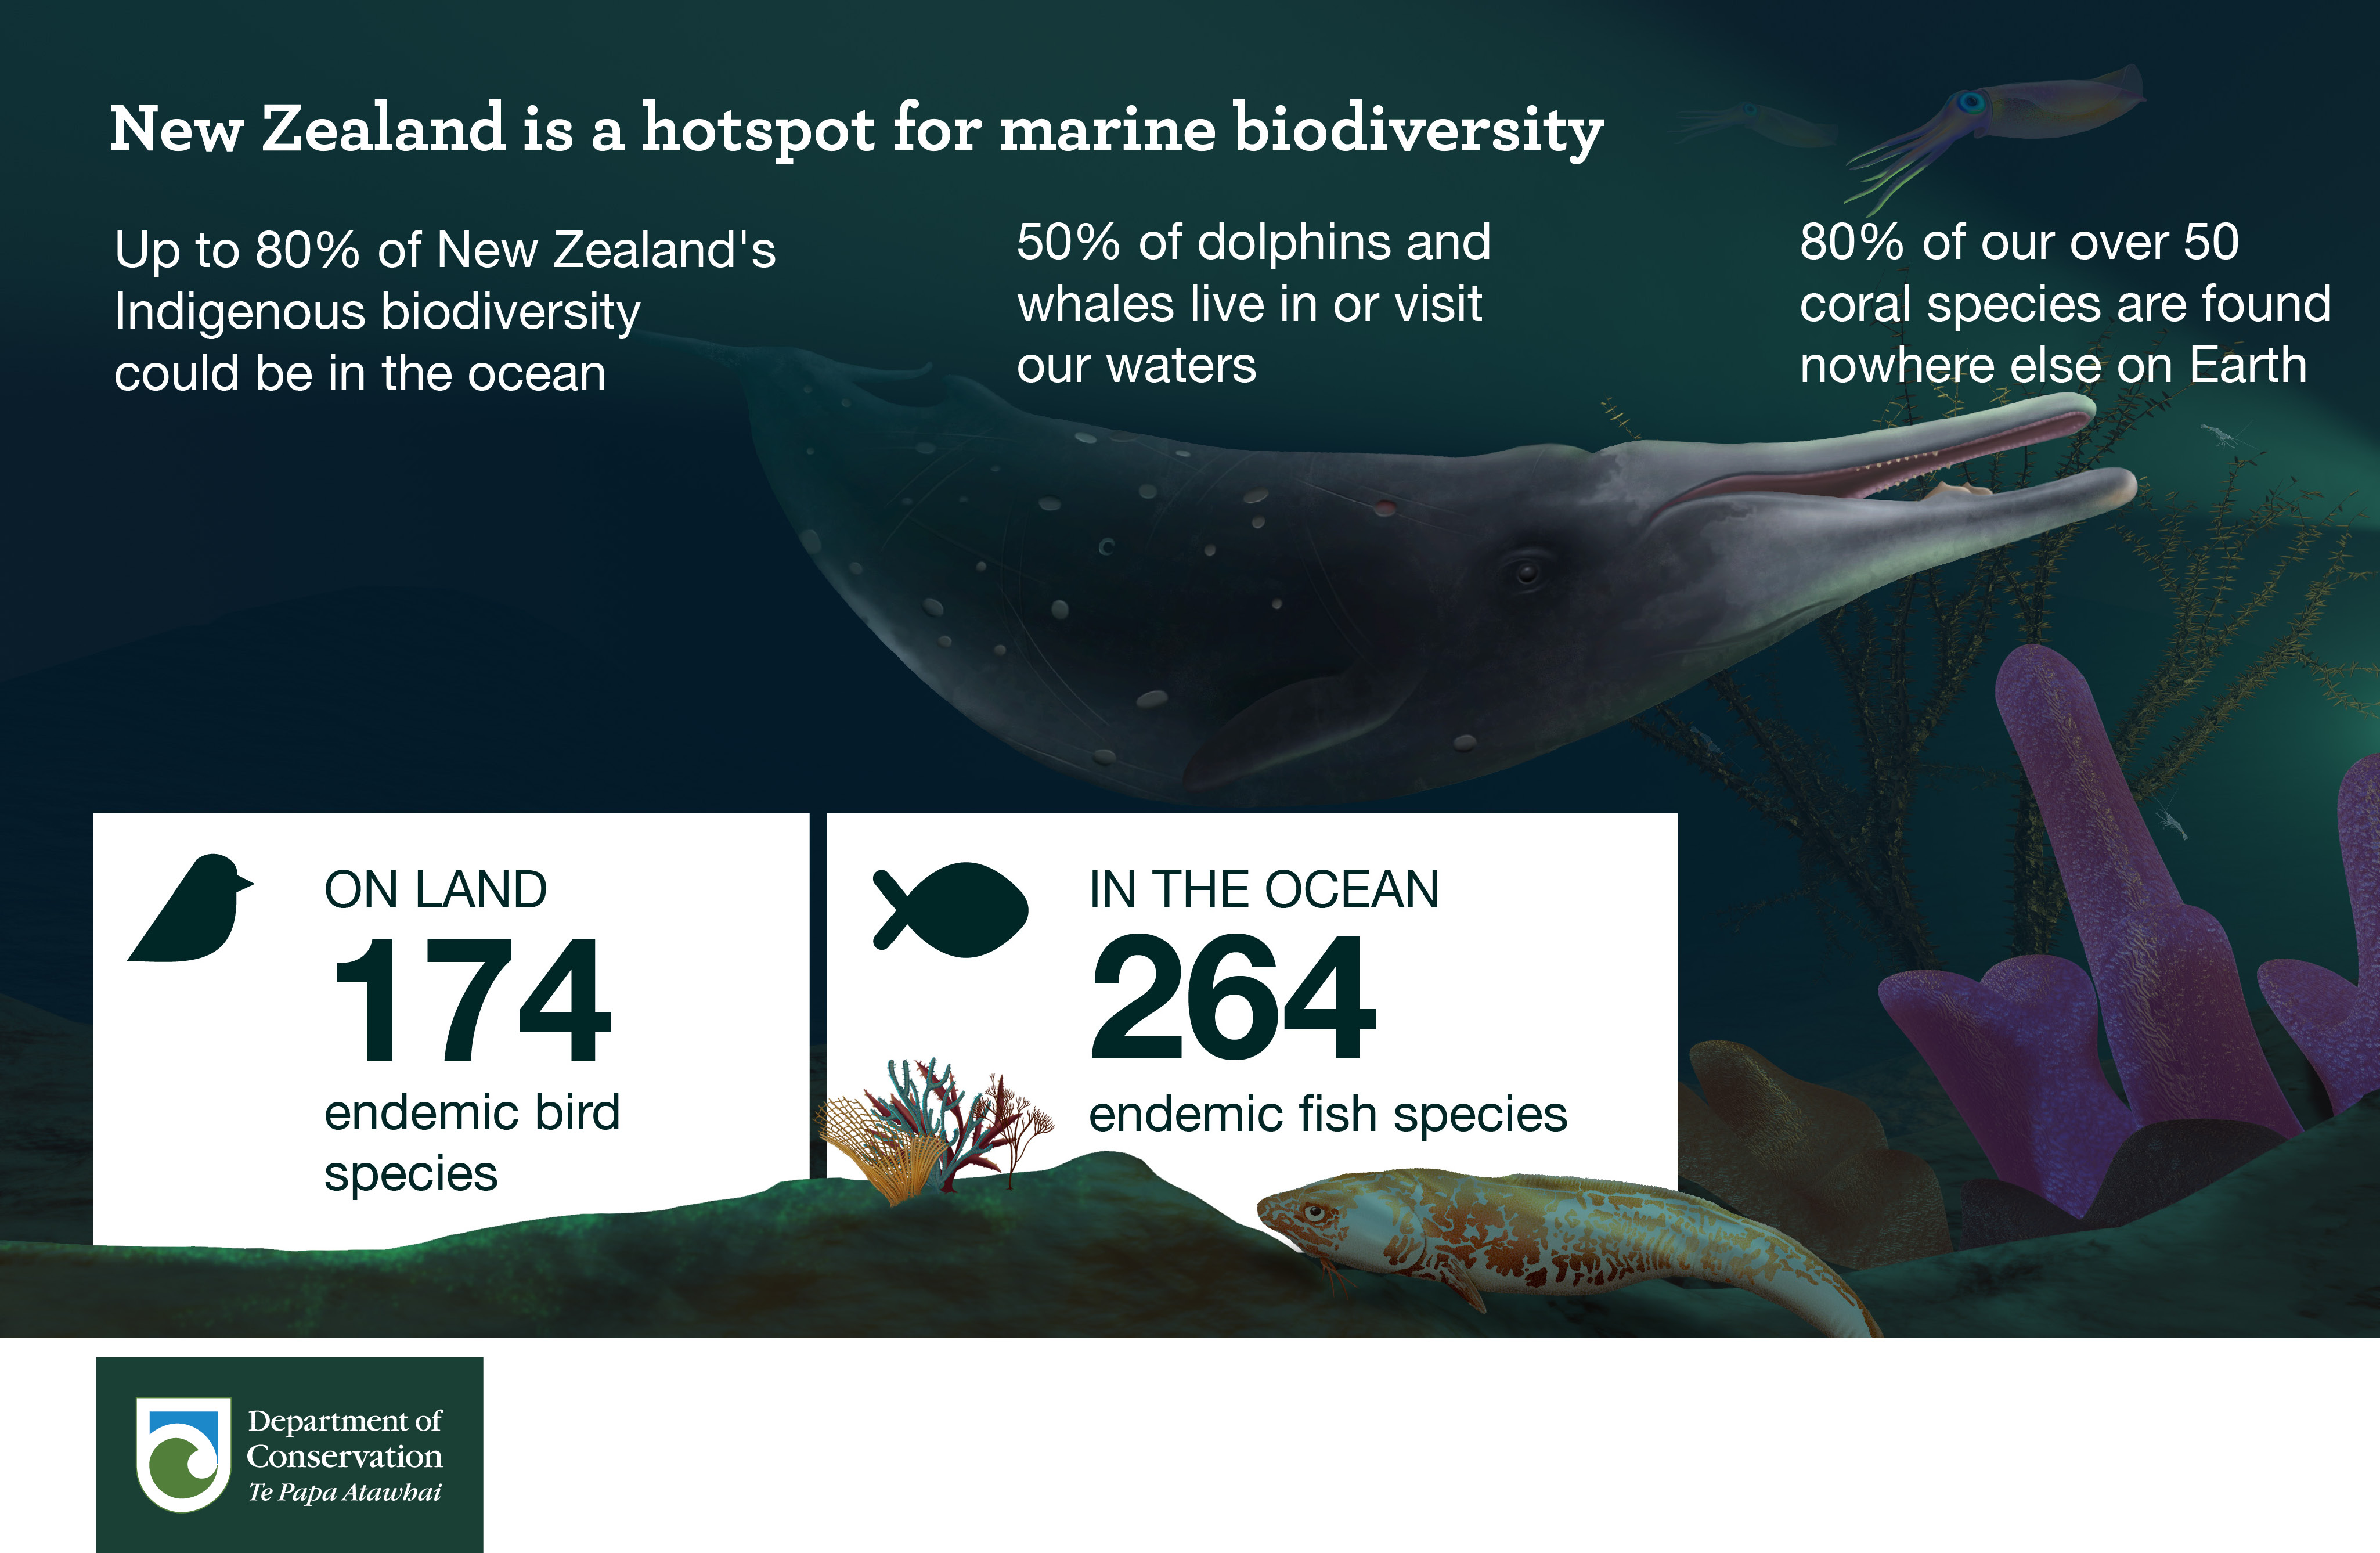 New Zealand is a hotspot for biodiversity